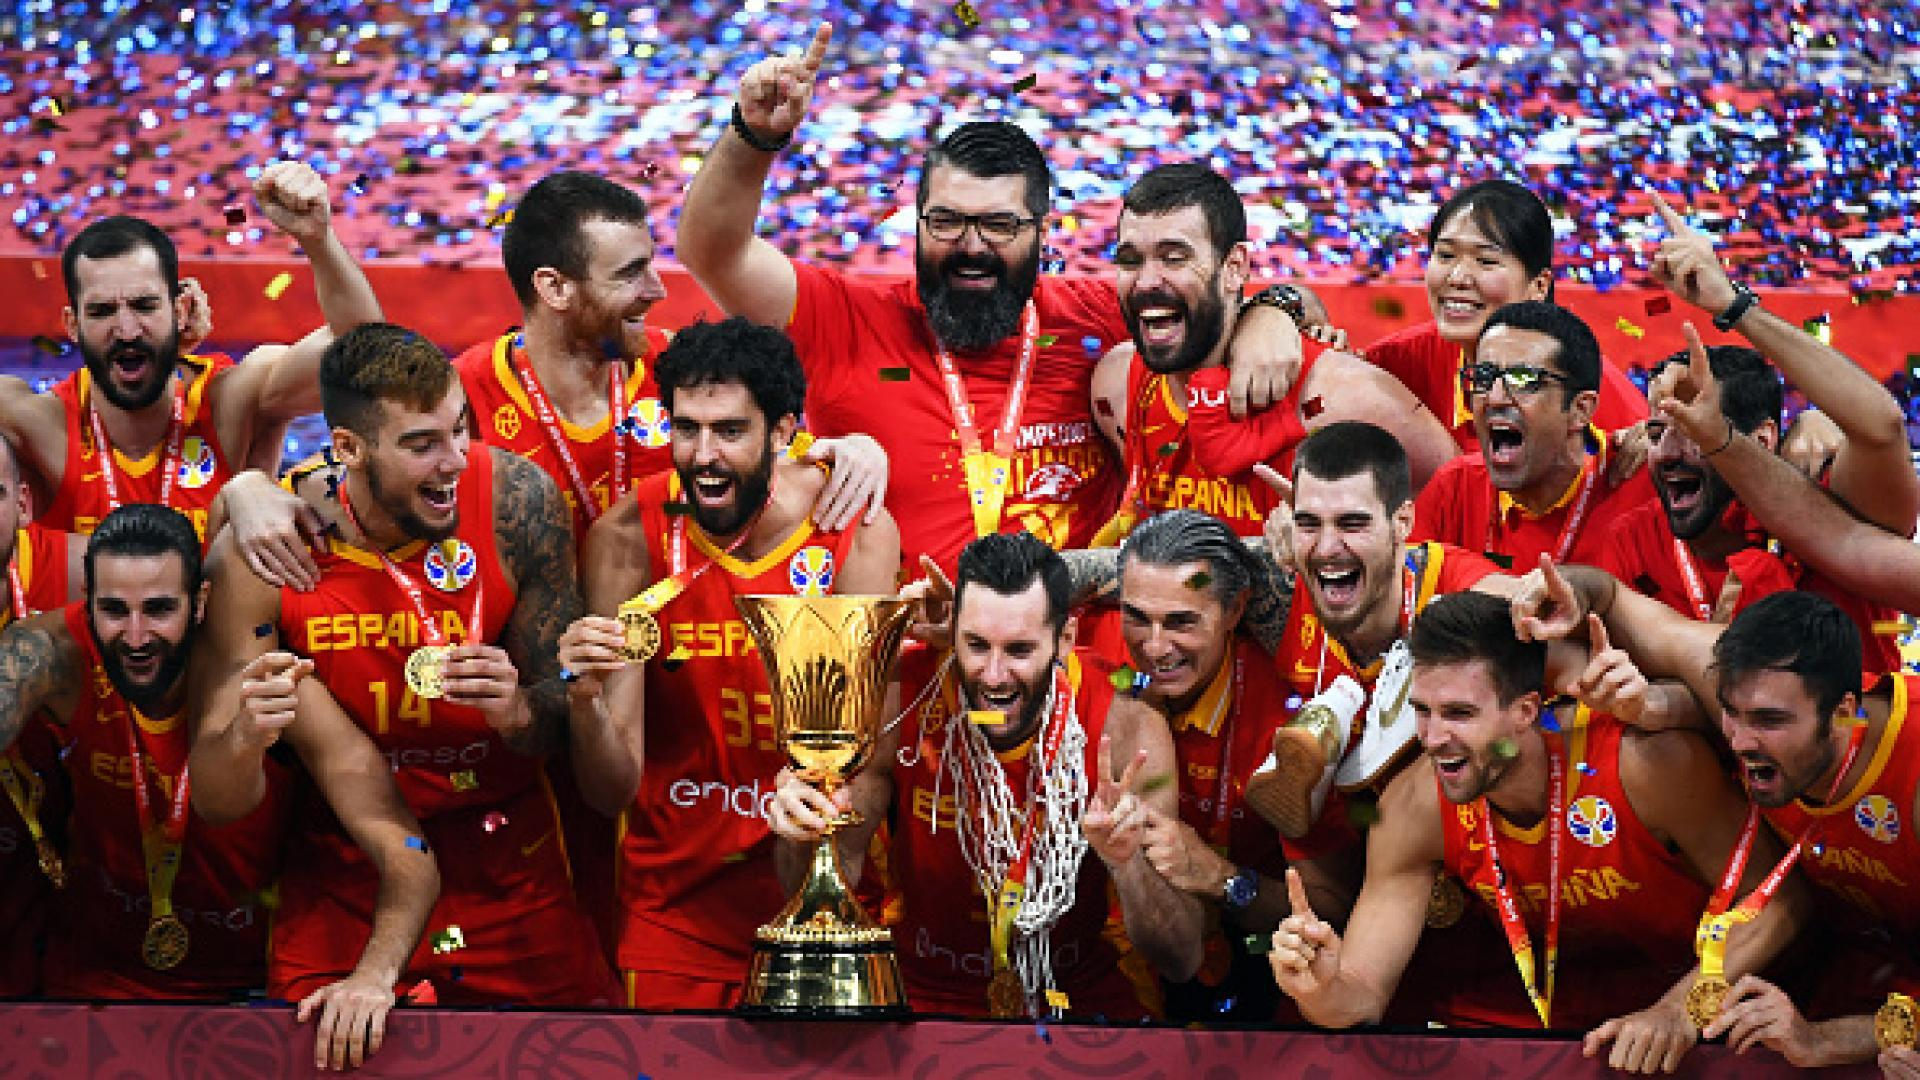 Ricky Rubio, Marc Gasol lead Spain past Argentina to win gold at FIBA World Cup